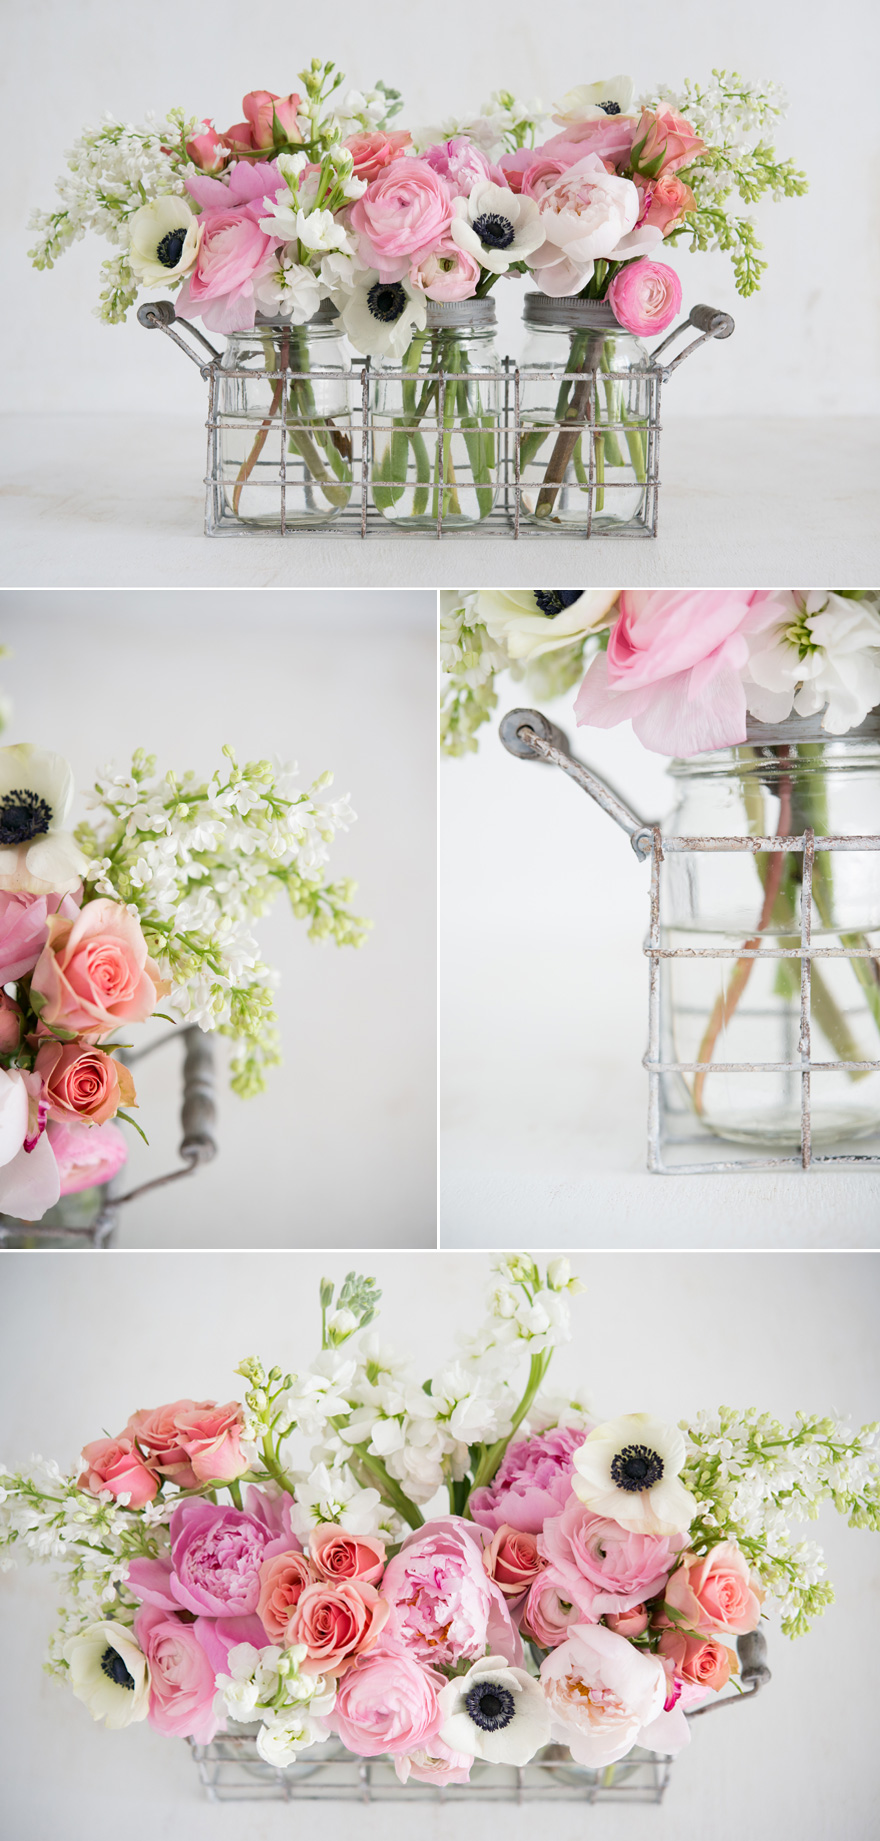 Pink and White Spring Wedding Table Centrepiece Flowers in Jars | Confetti.co.uk